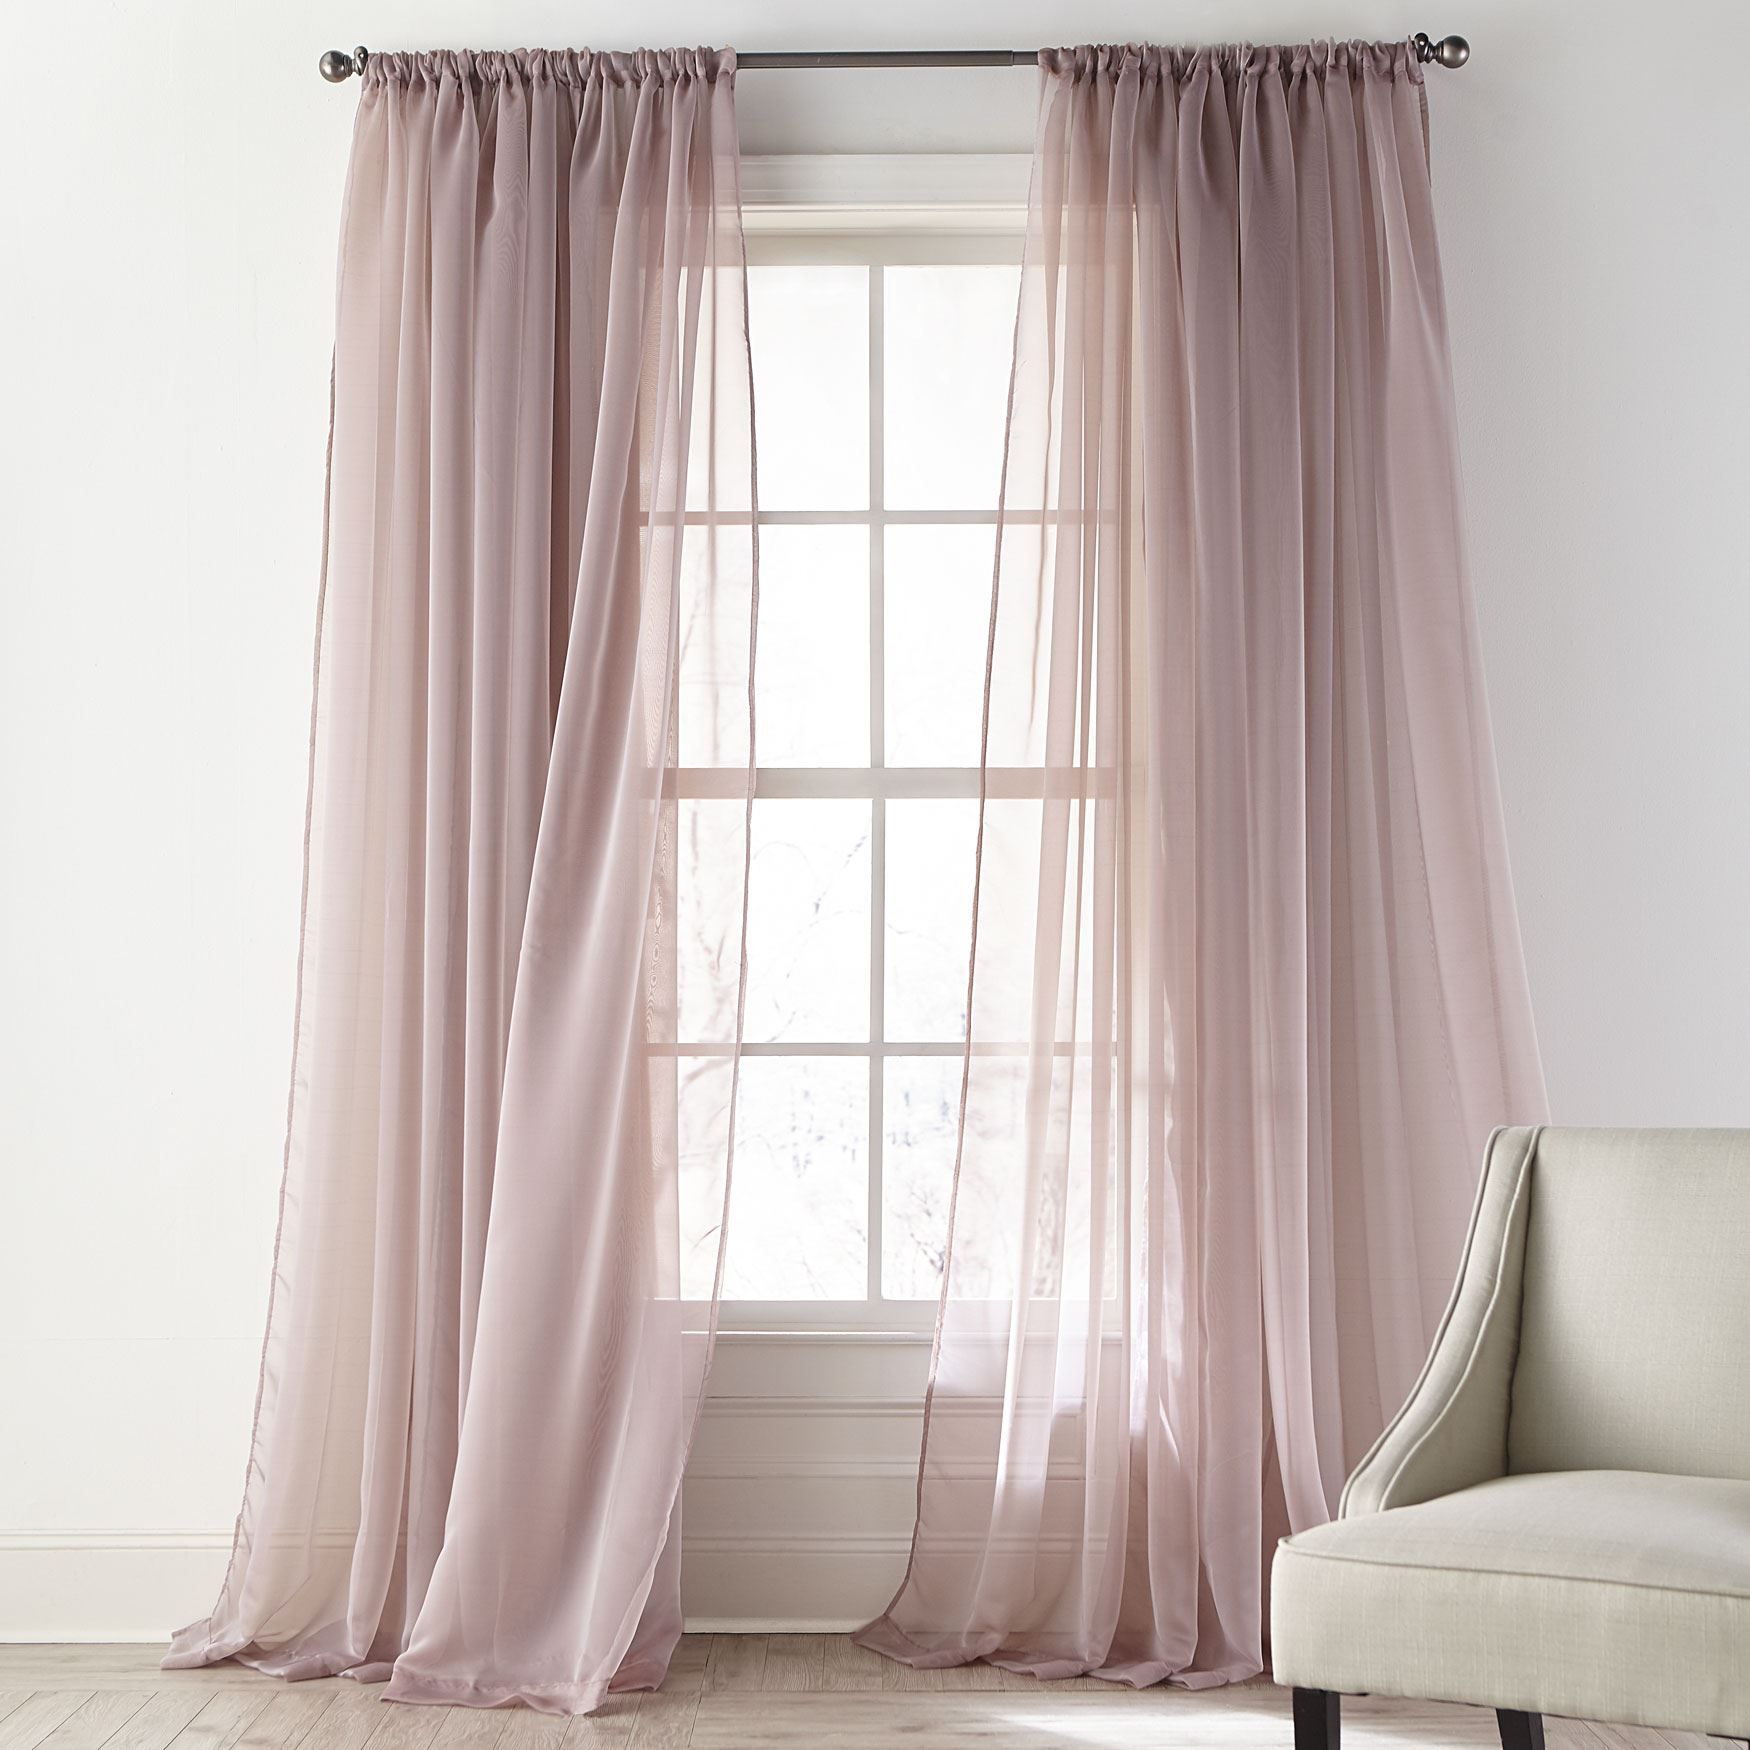 Ophelia Shimmer Curtain Sheer Curtains Brylane Home Sheer Curtains Bedroom Sheers Curtains Living Room Guest Bedroom Decor